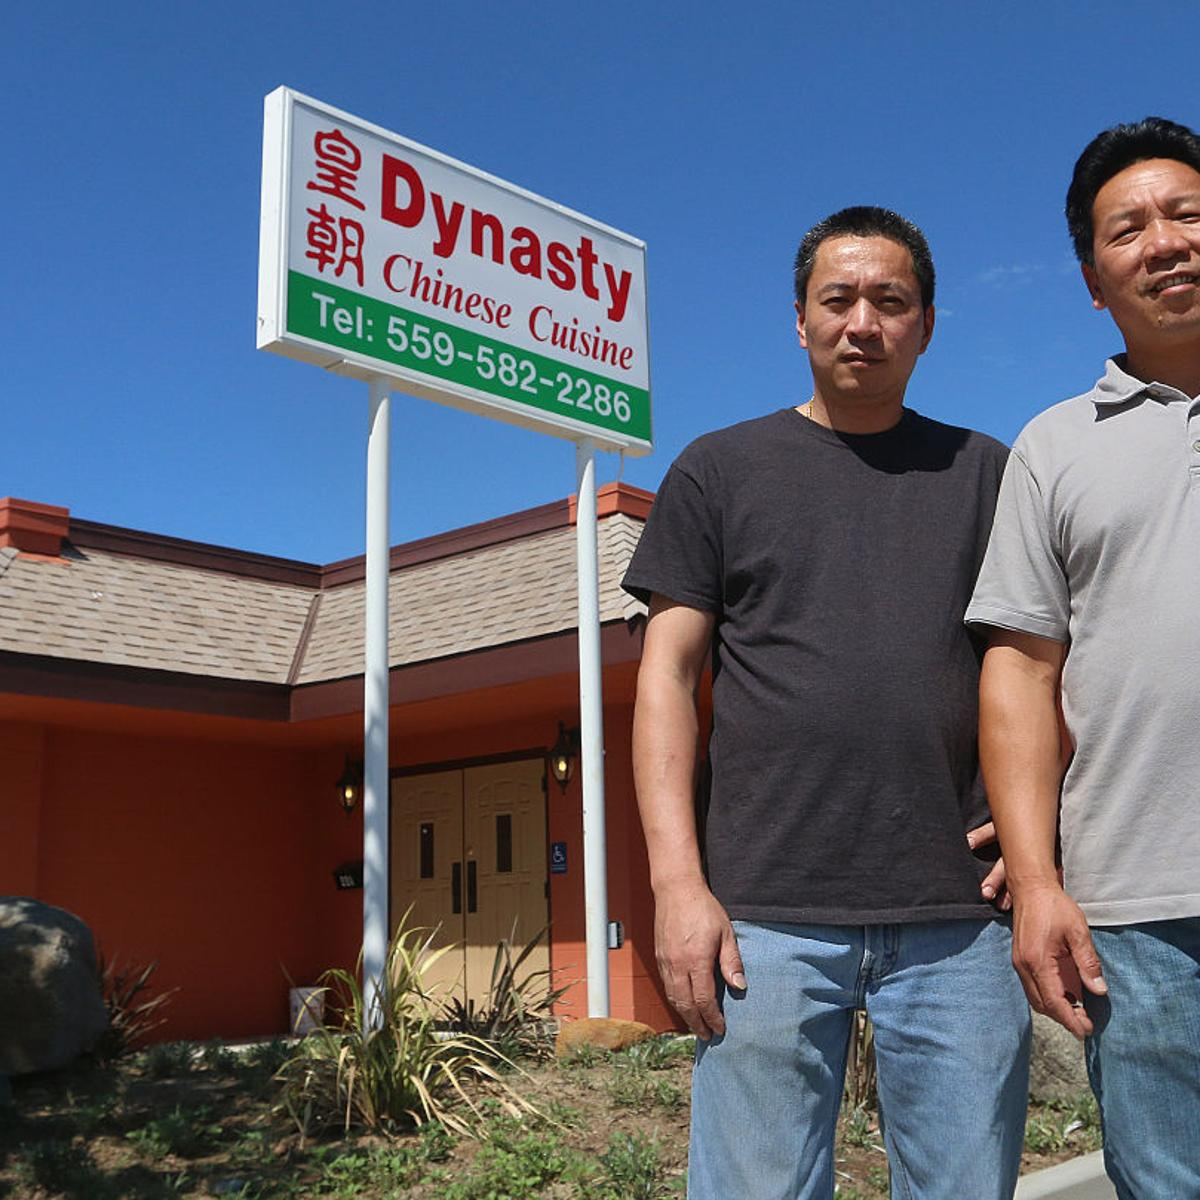 Dynasty Chinese Cuisine to open in August   Local ...